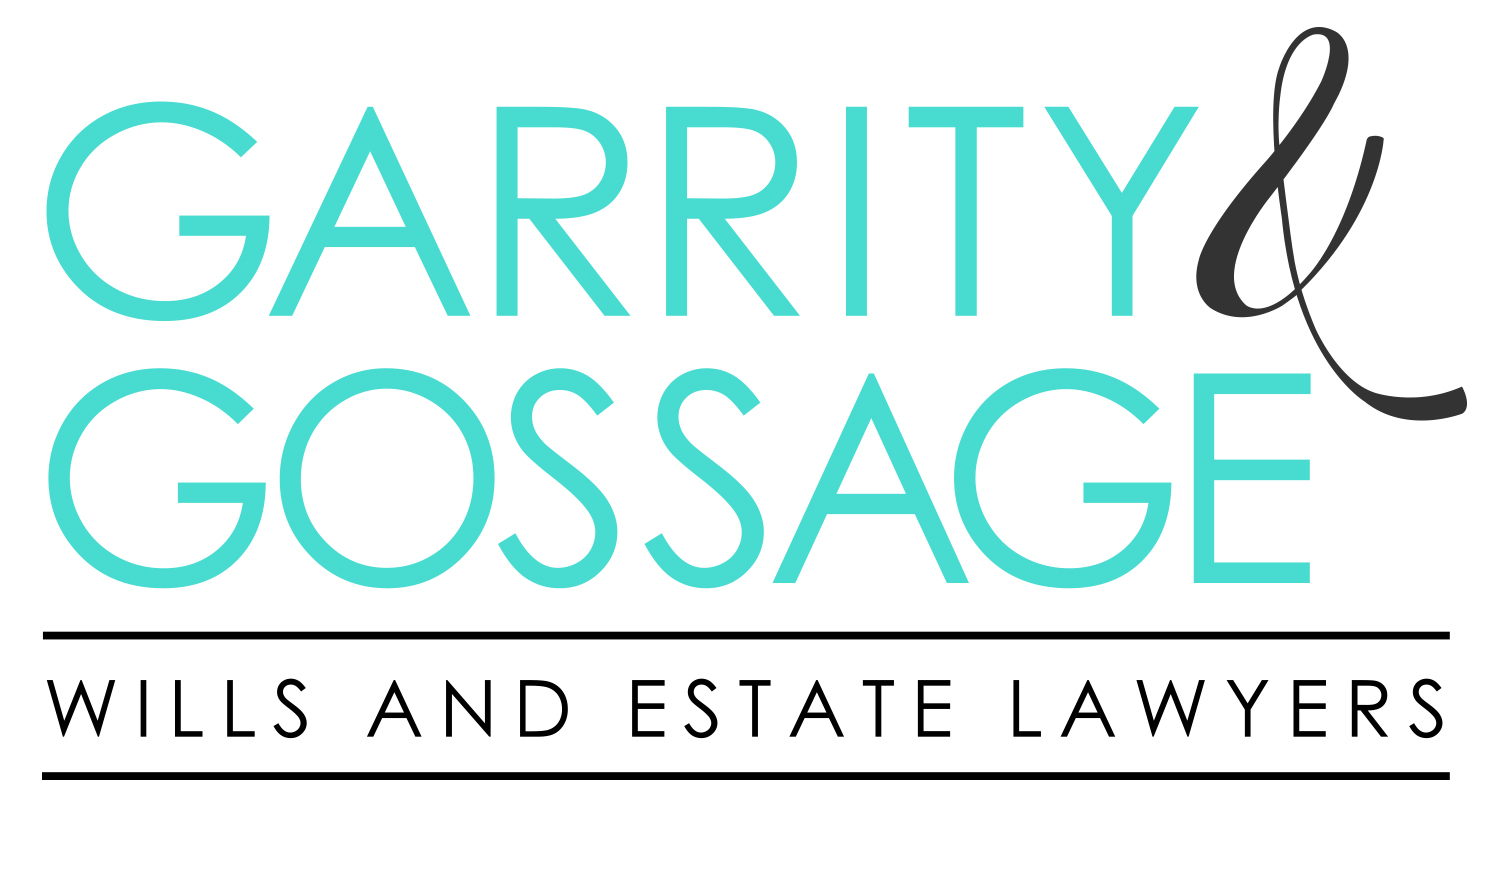 Garrity & Gossage, Wills and Estate Lawyers